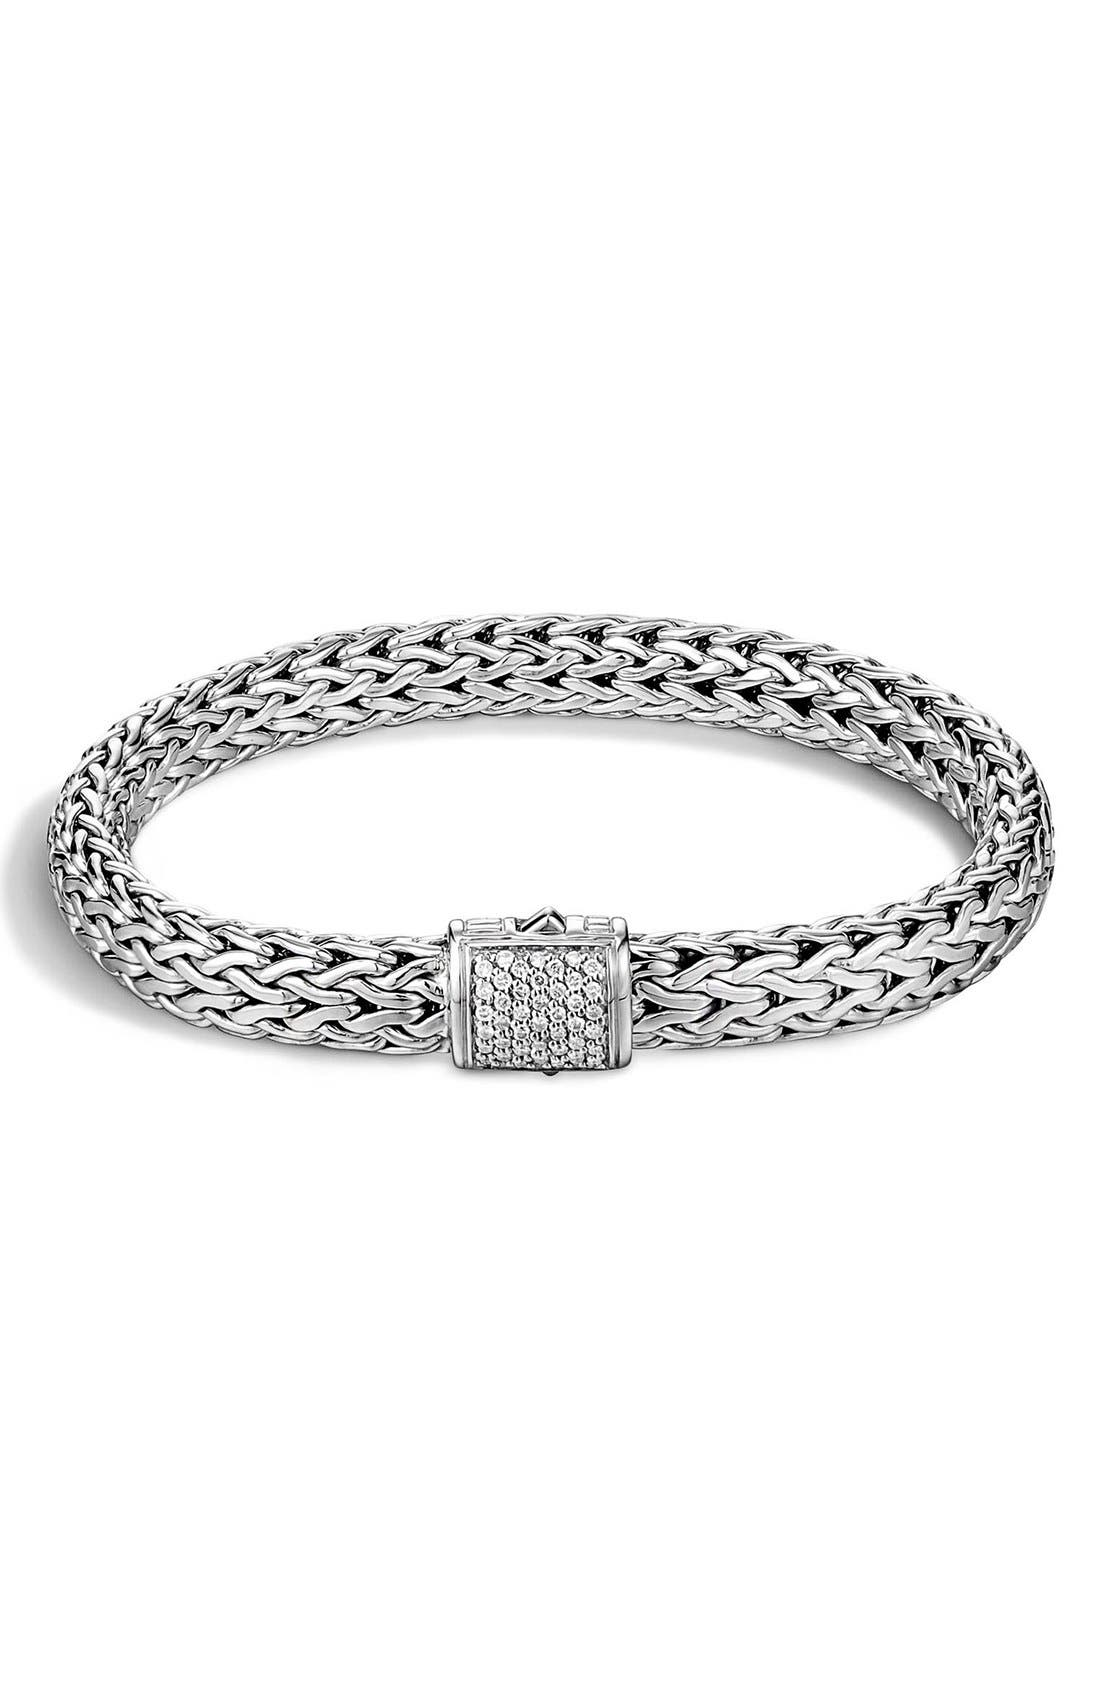 Classic Chain 7.5mm Diamond Bracelet,                             Main thumbnail 1, color,                             Silver